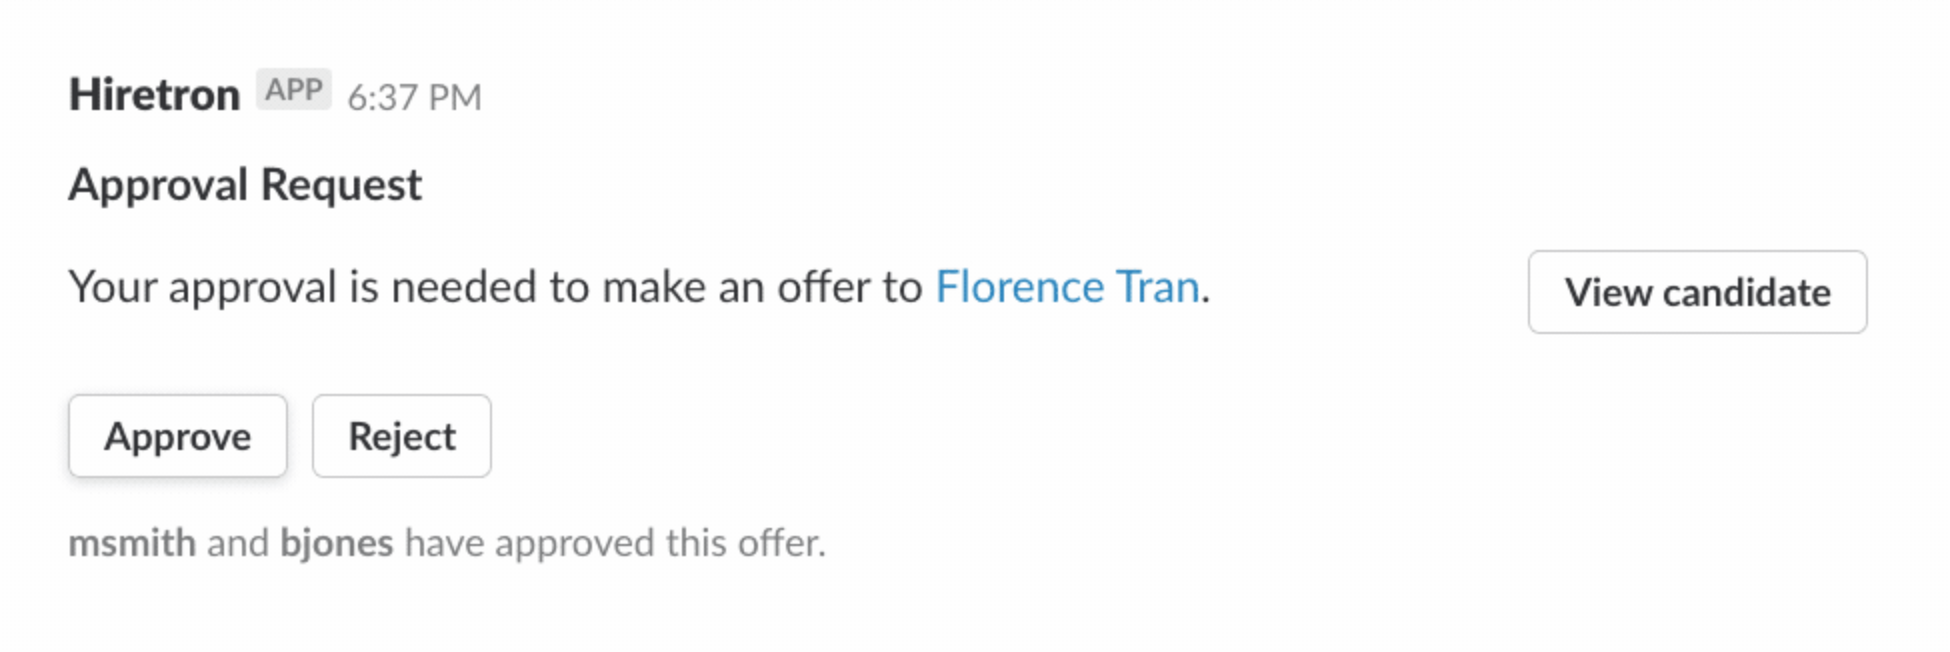 A button in a Slack message being clicked, triggering an external service to take action